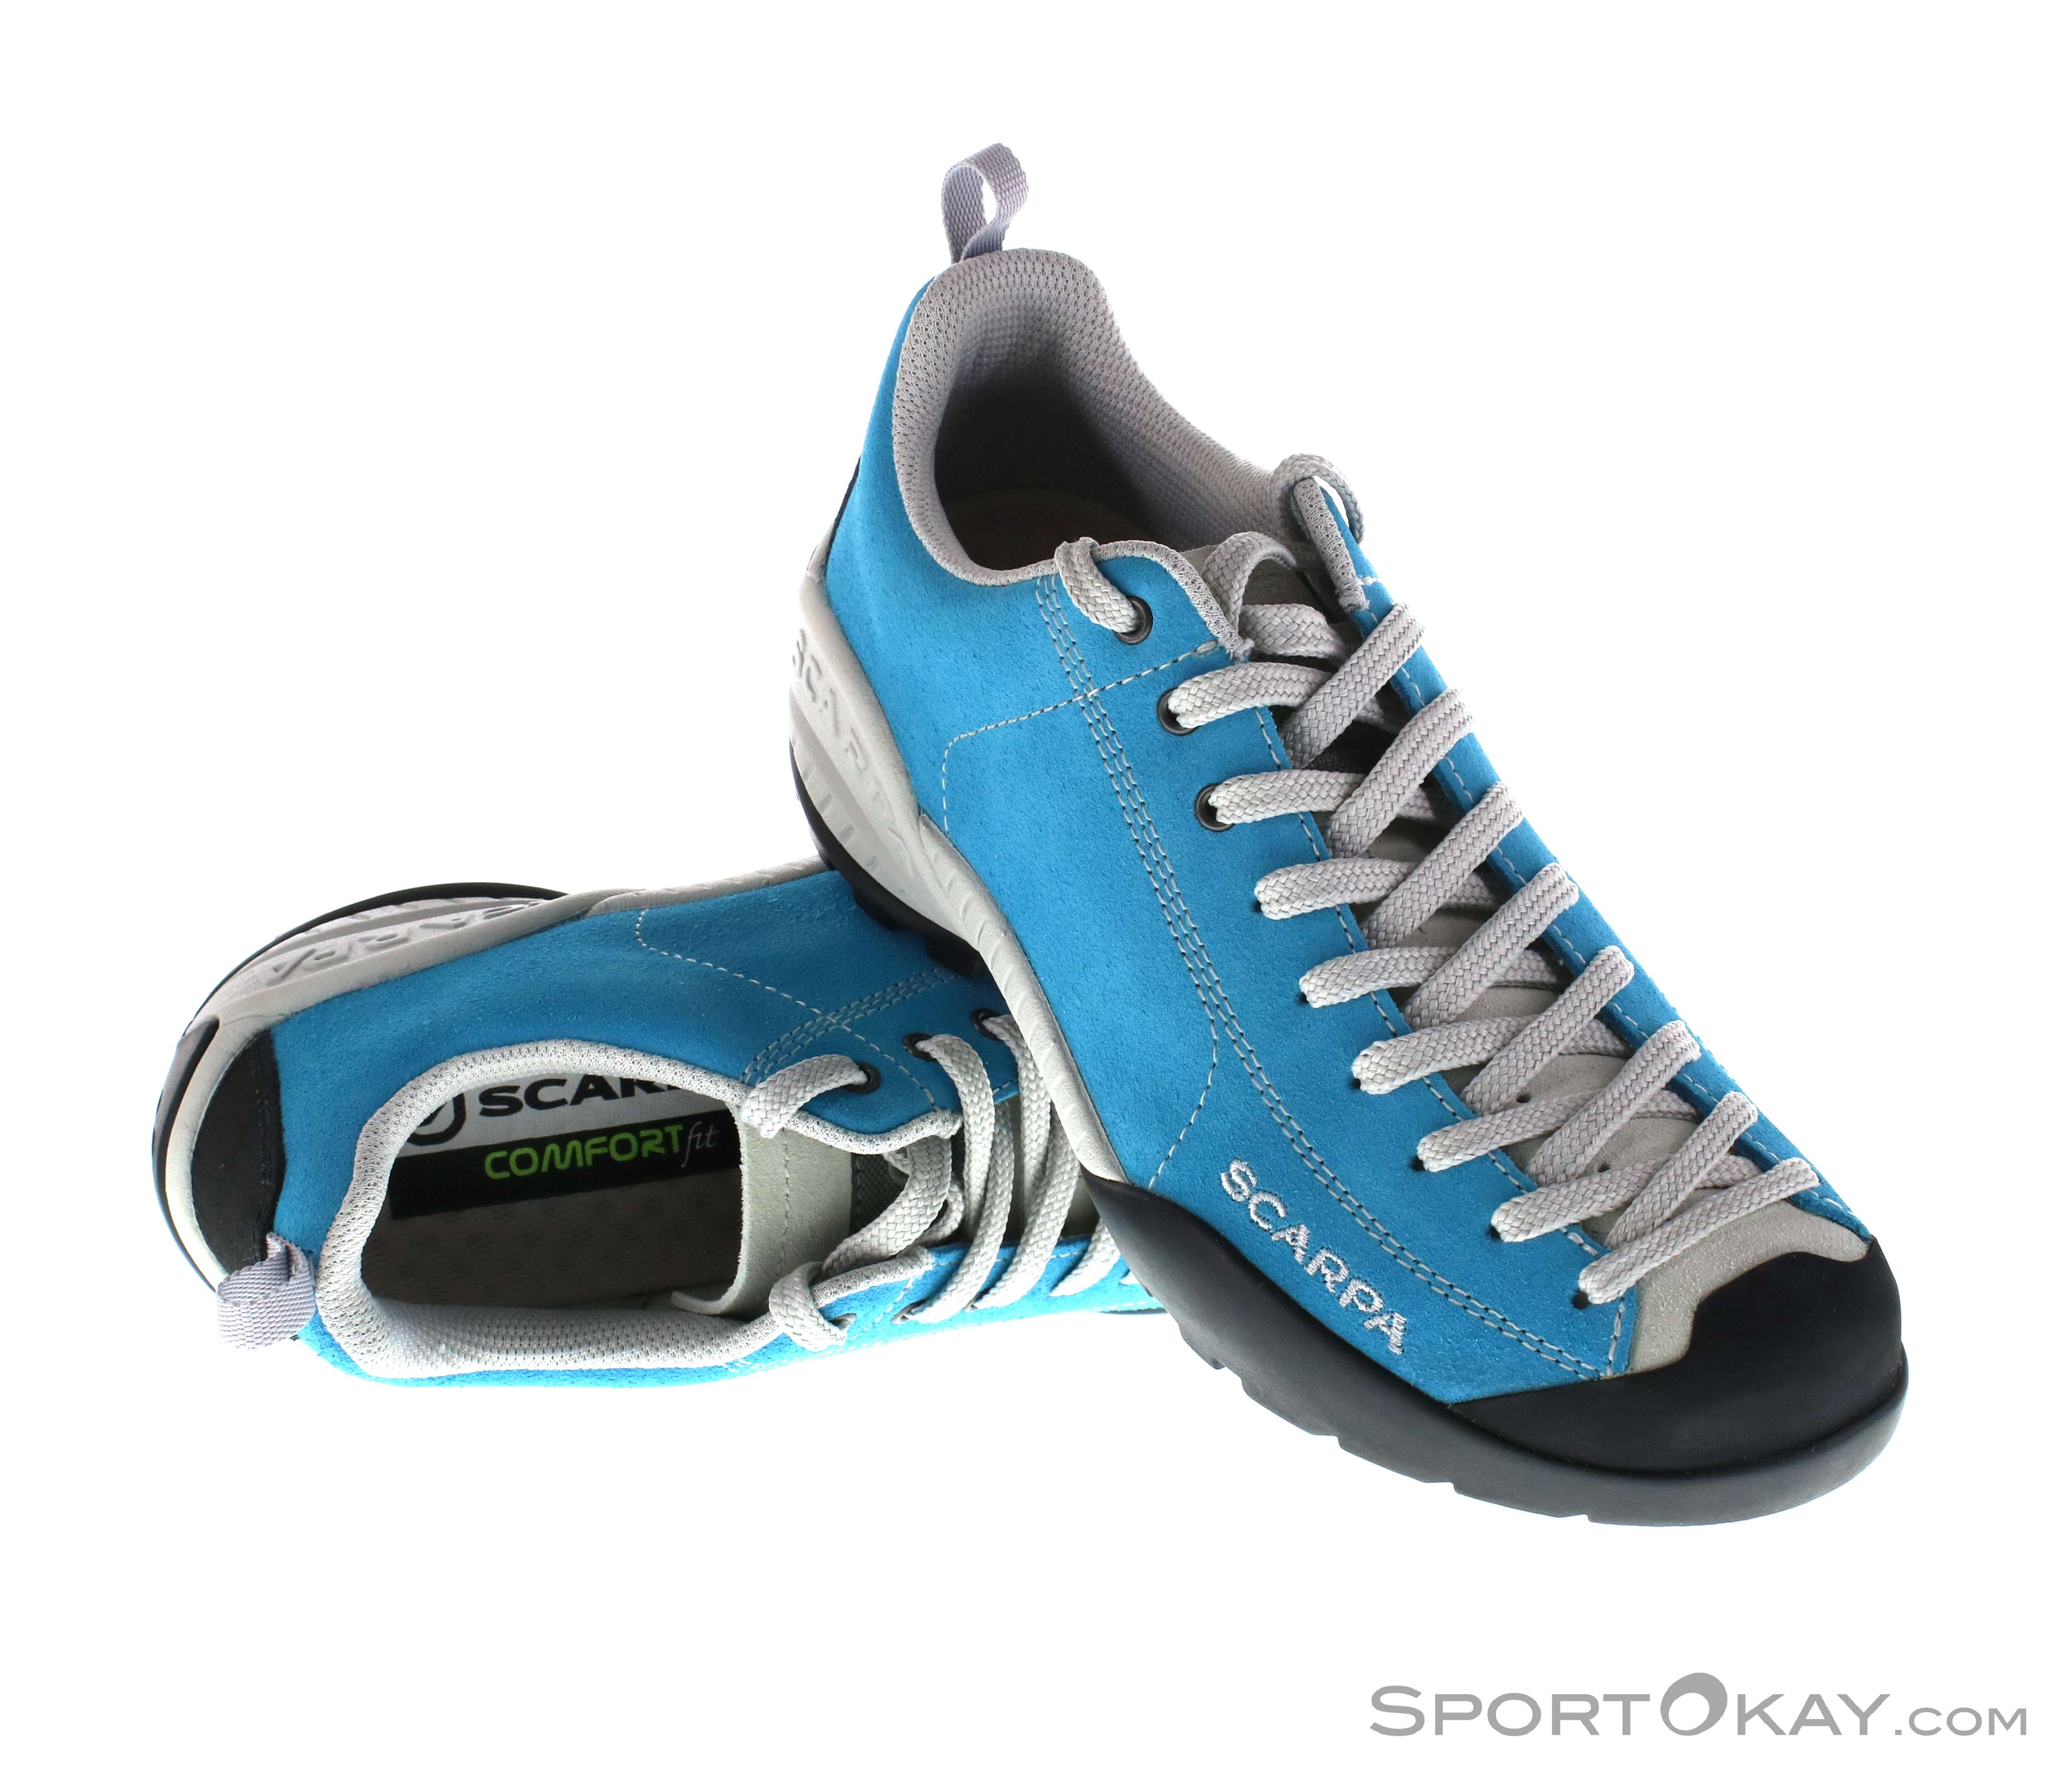 recognized brands cute offer discounts Scarpa Mojito Womens Approach Shoes - Hiking Boots - Shoes & Poles ...